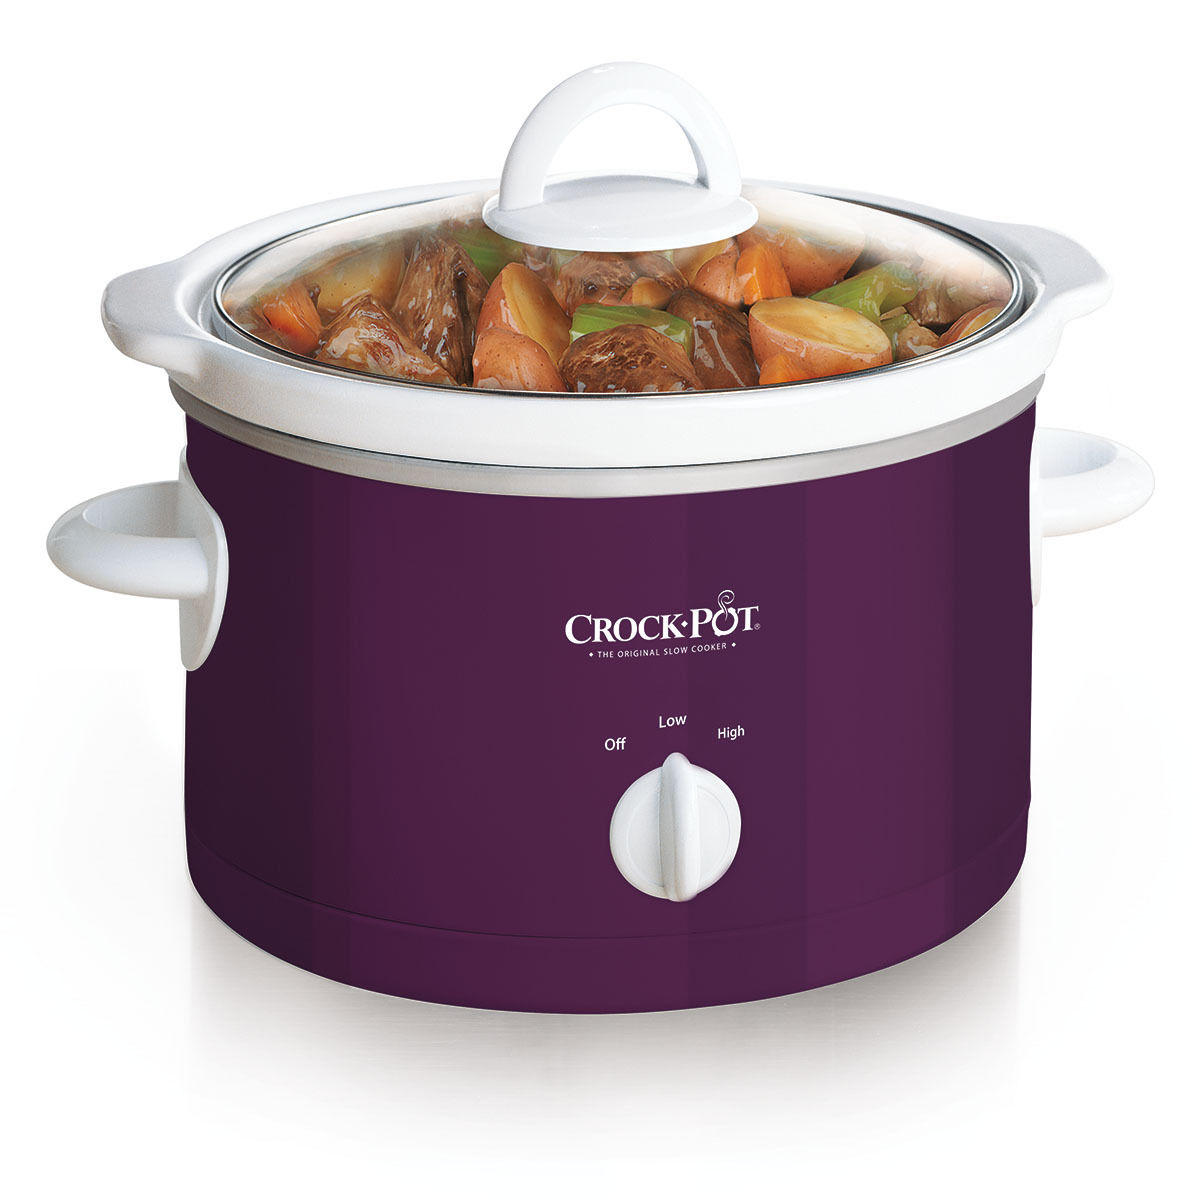 Crock-Pot 2.5-Quart Manual Slow Cooker, Purple SCR250P-MJ